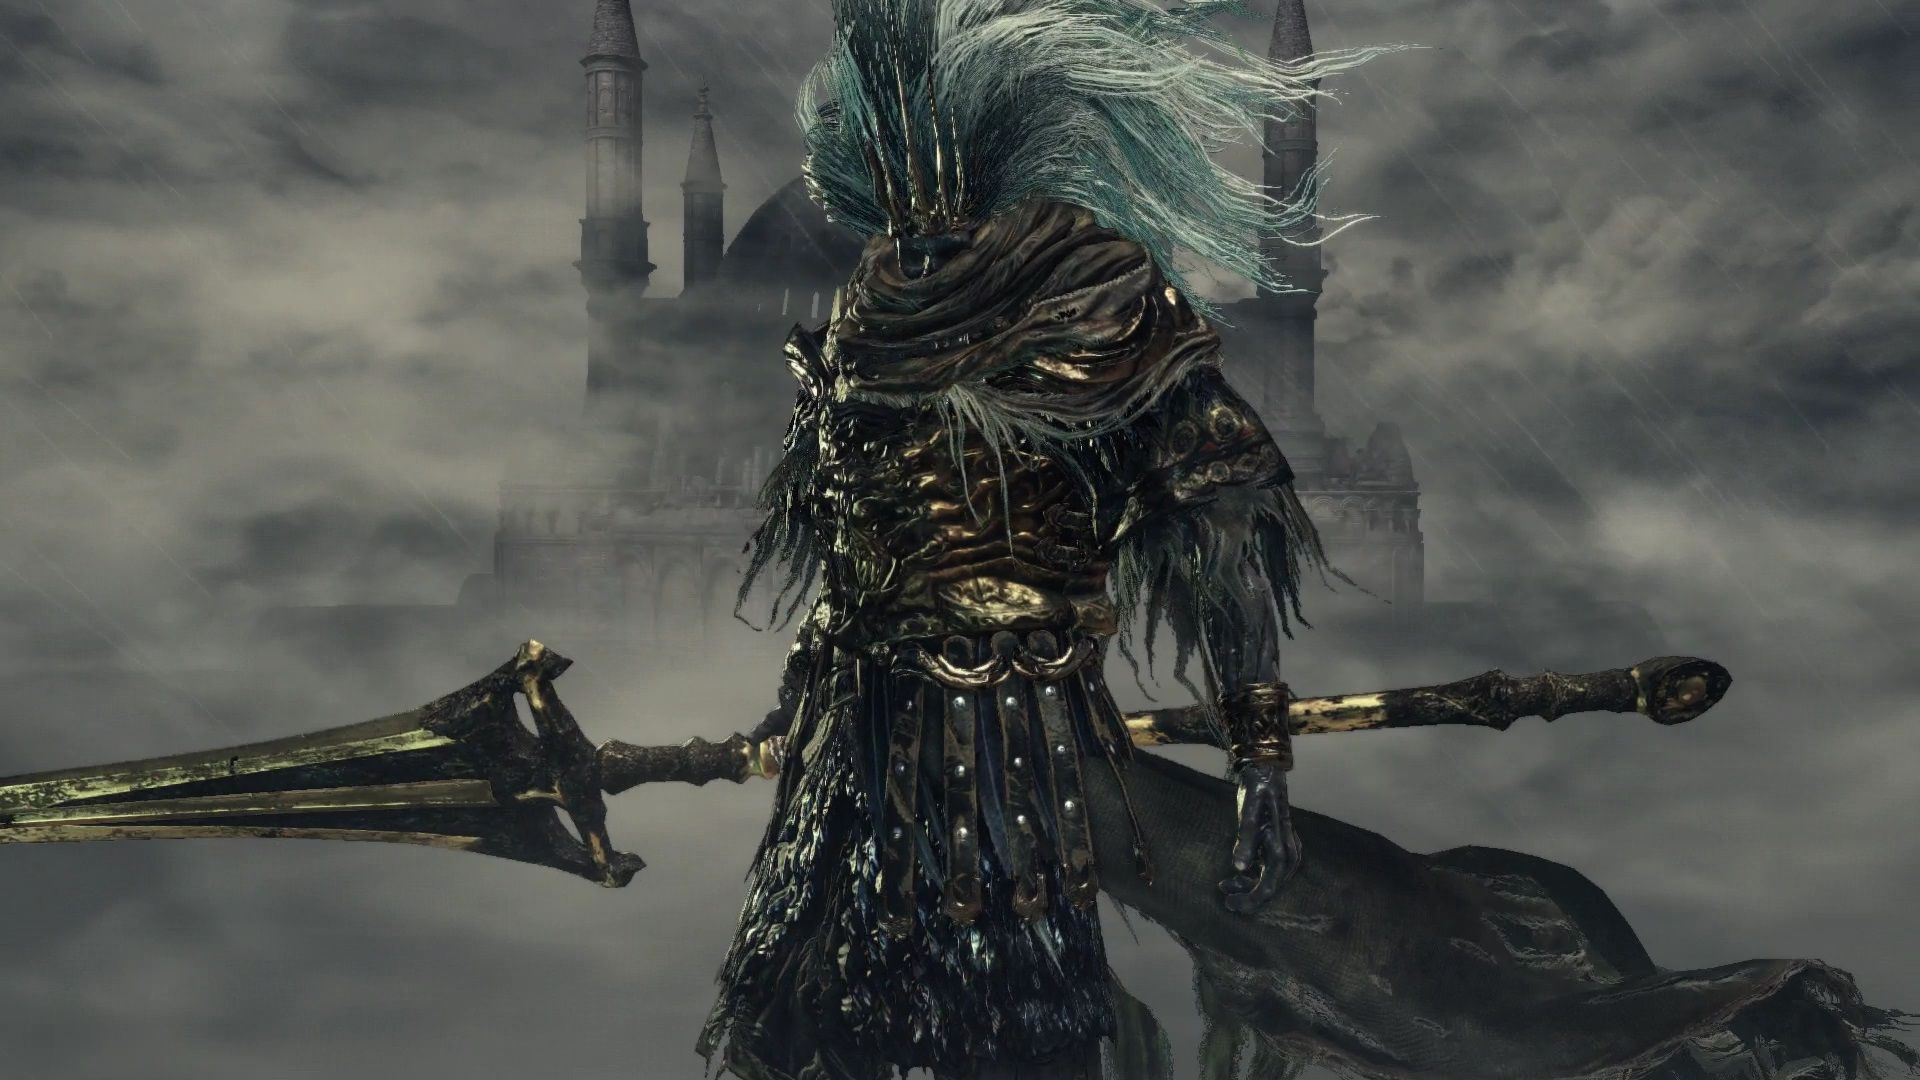 Download Cool Dark Pictures Without Watermark Dark Souls 3 Dark